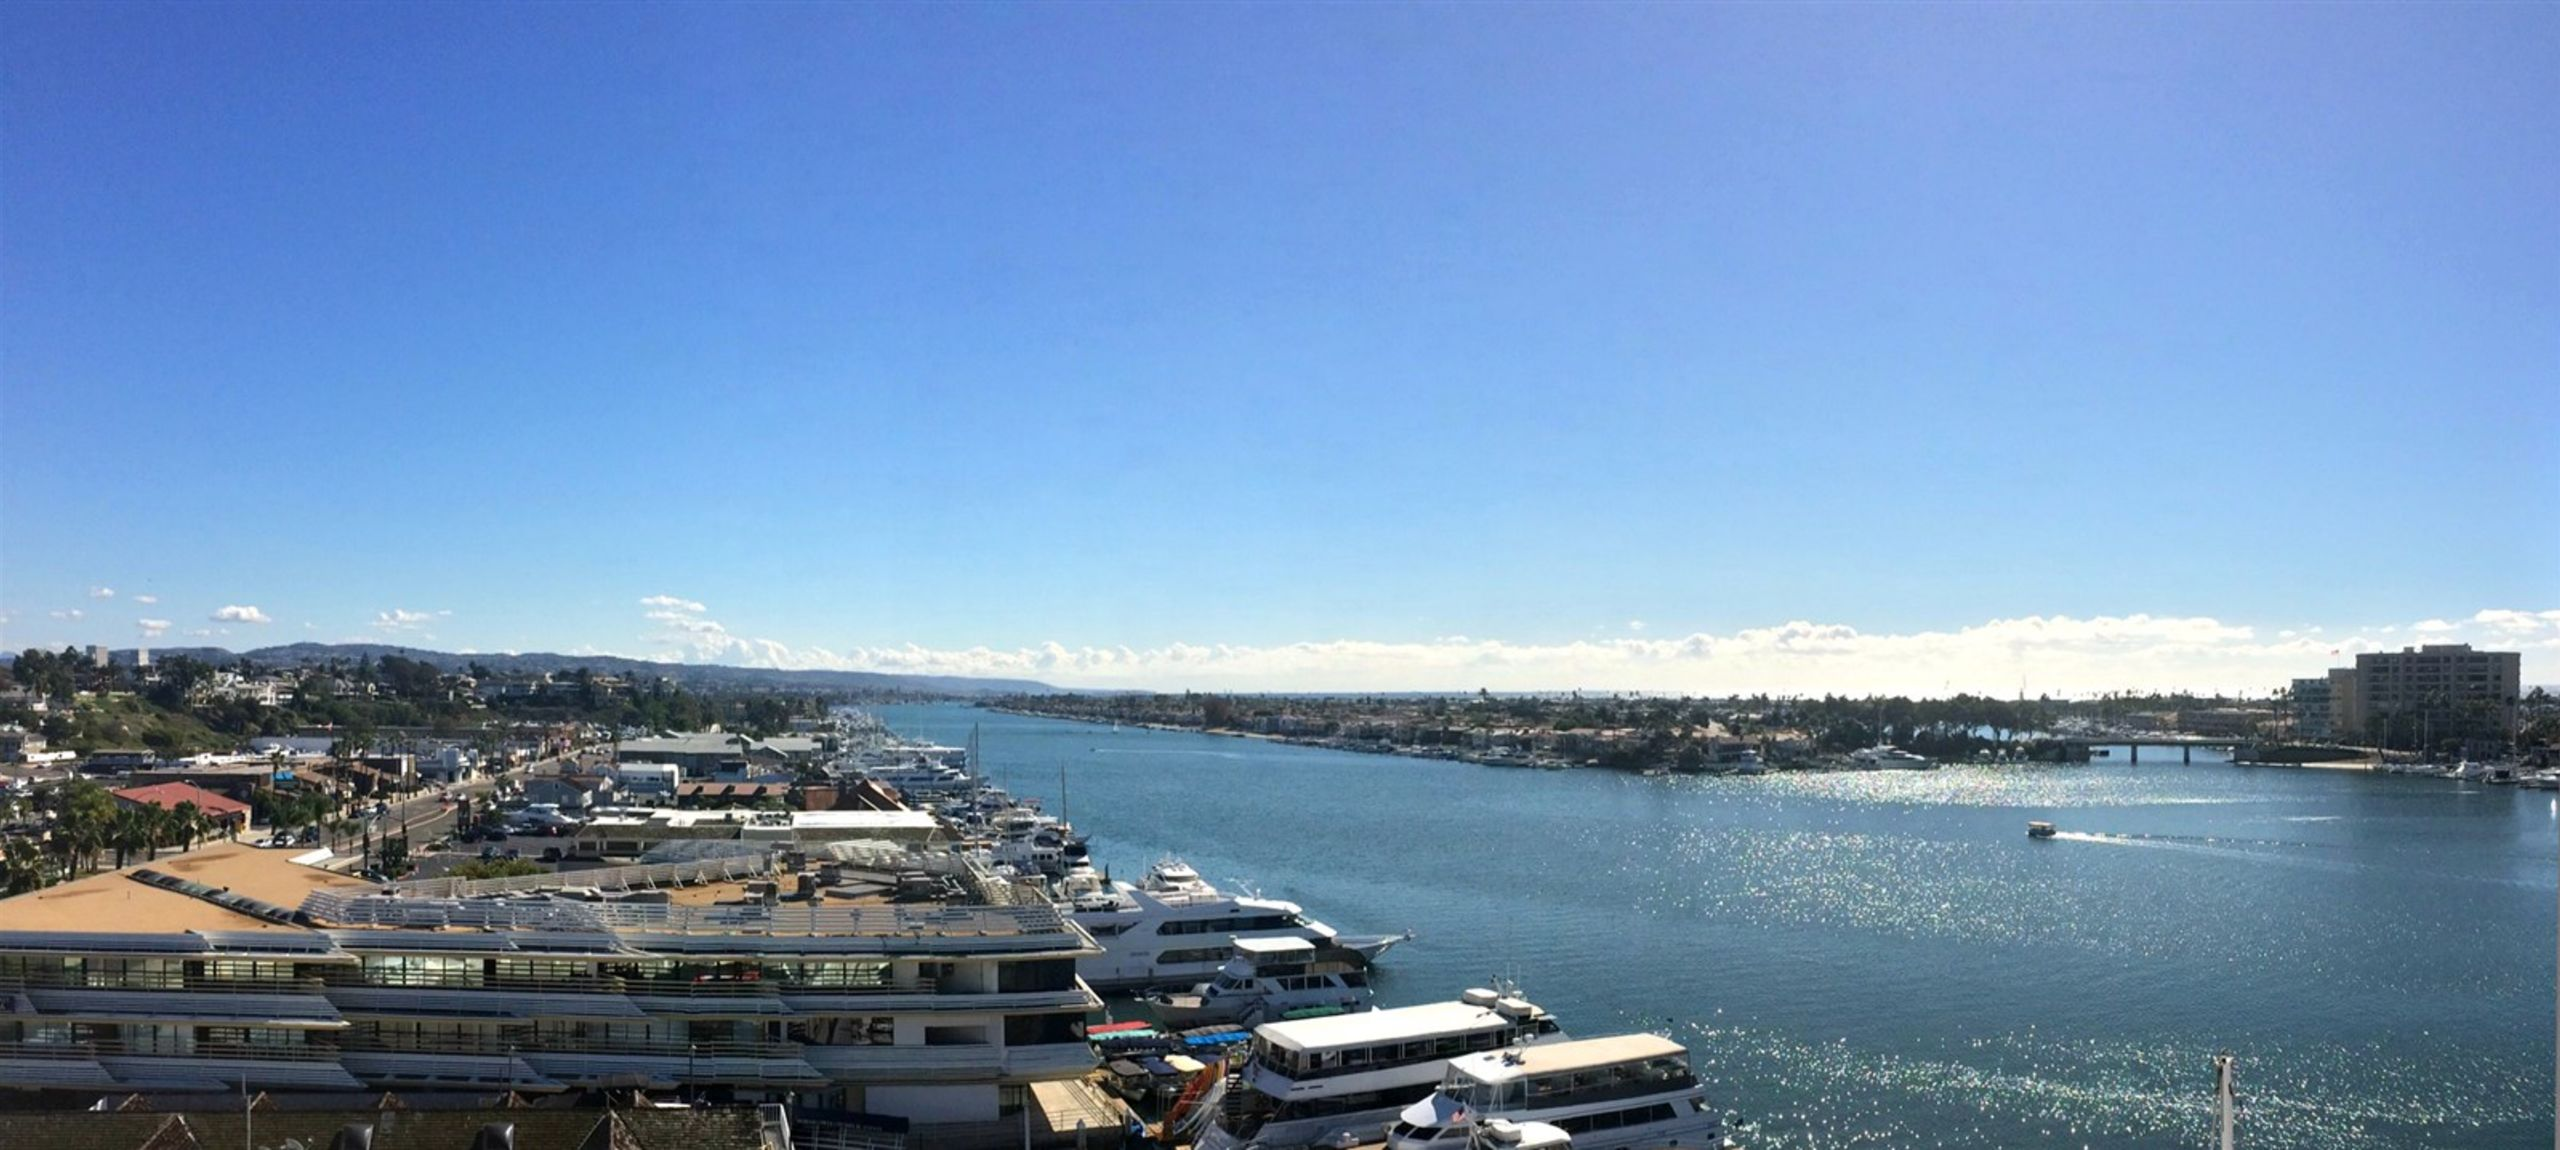 Newport Beach Harbor View